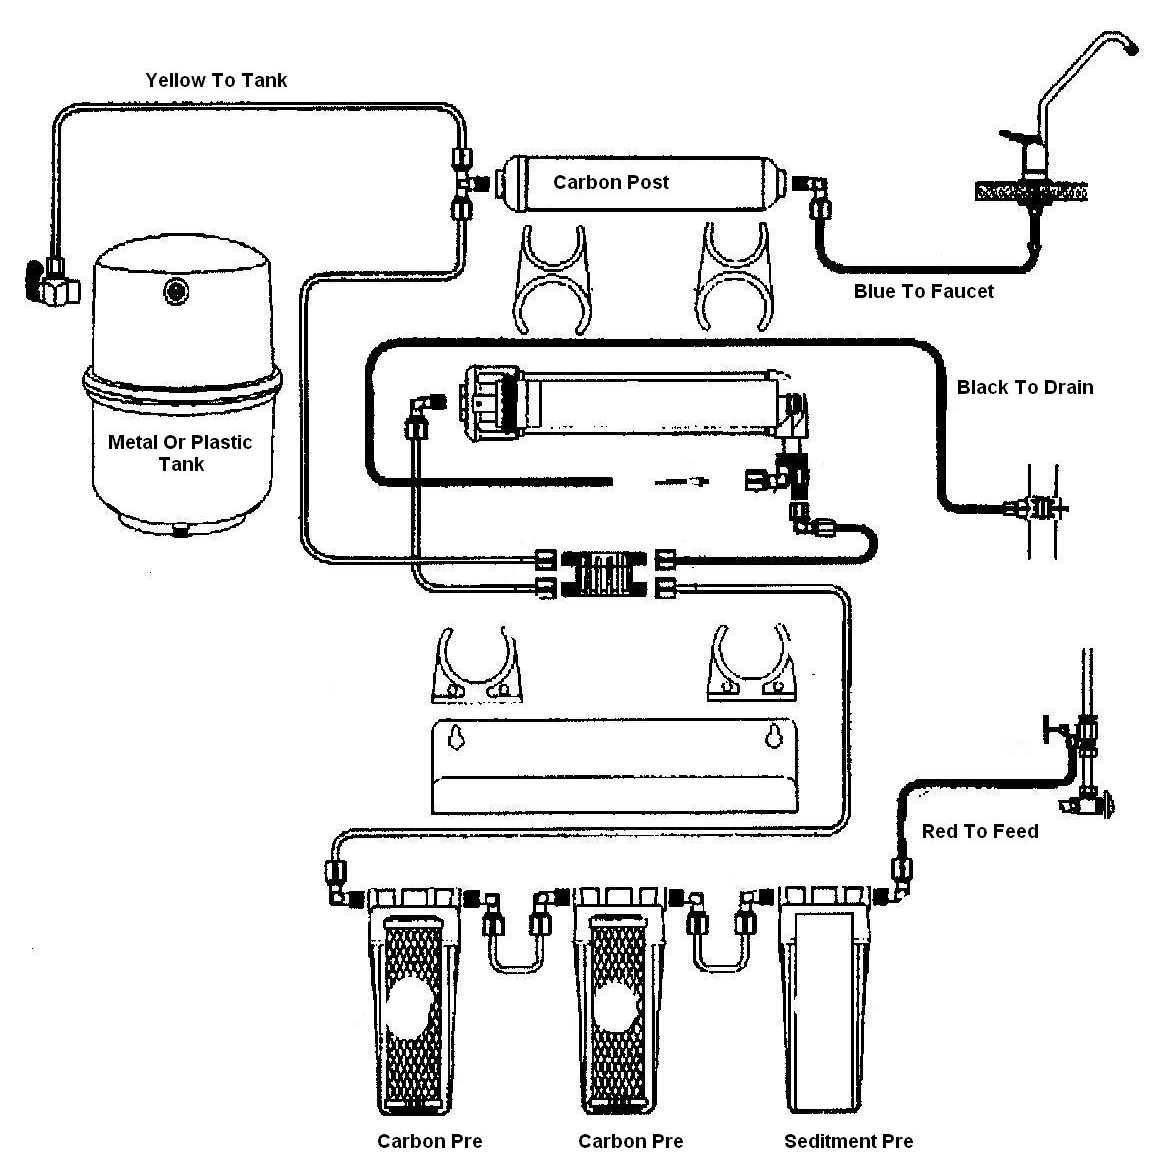 Schematic Symbol For Pump